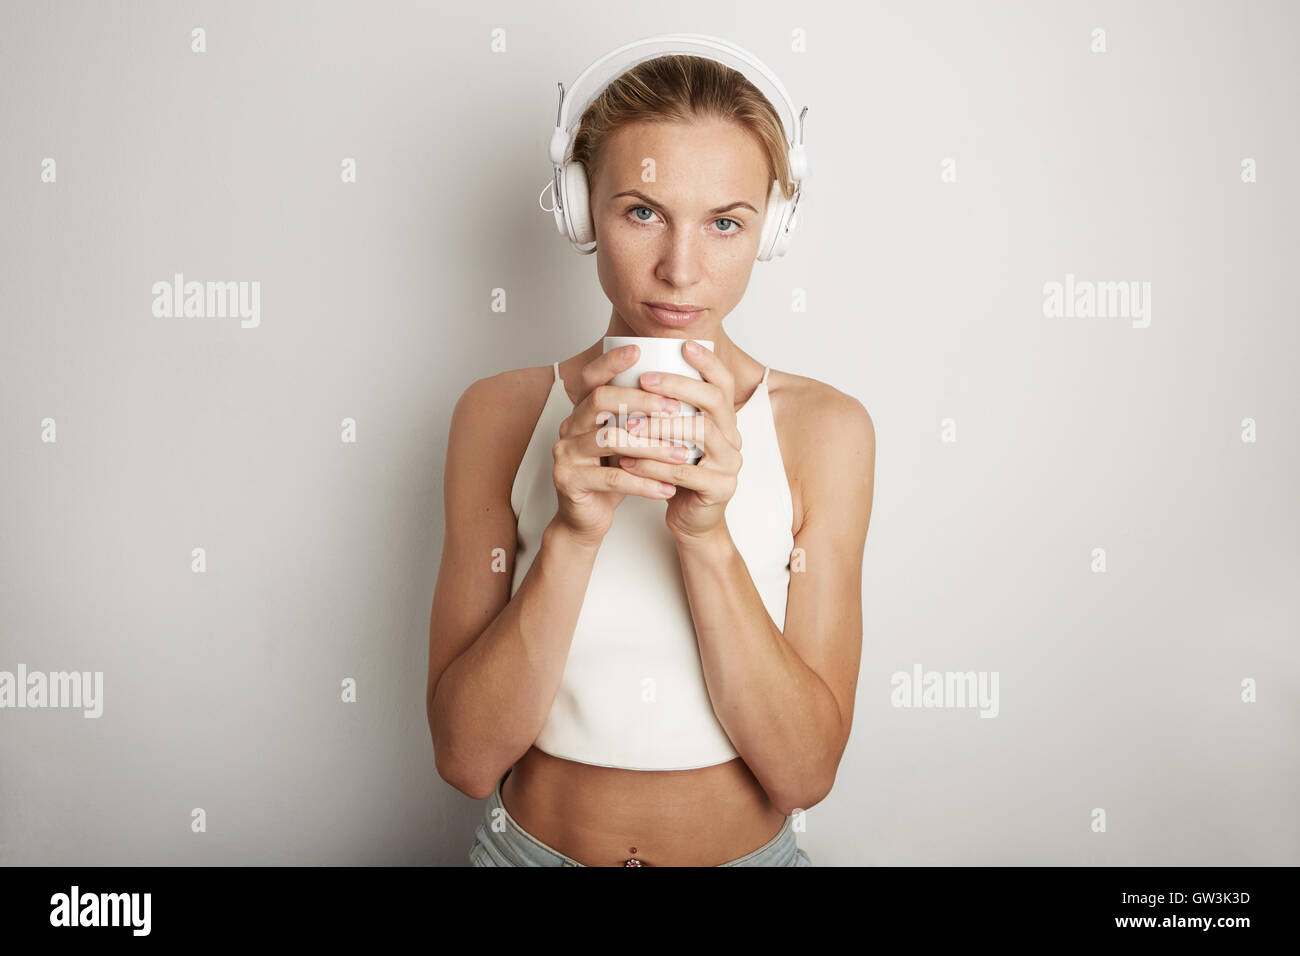 Portrait Handsome Young Woman Listening Music Player Headphones Blank White Background.Pretty Girl looking Holding - Stock Image